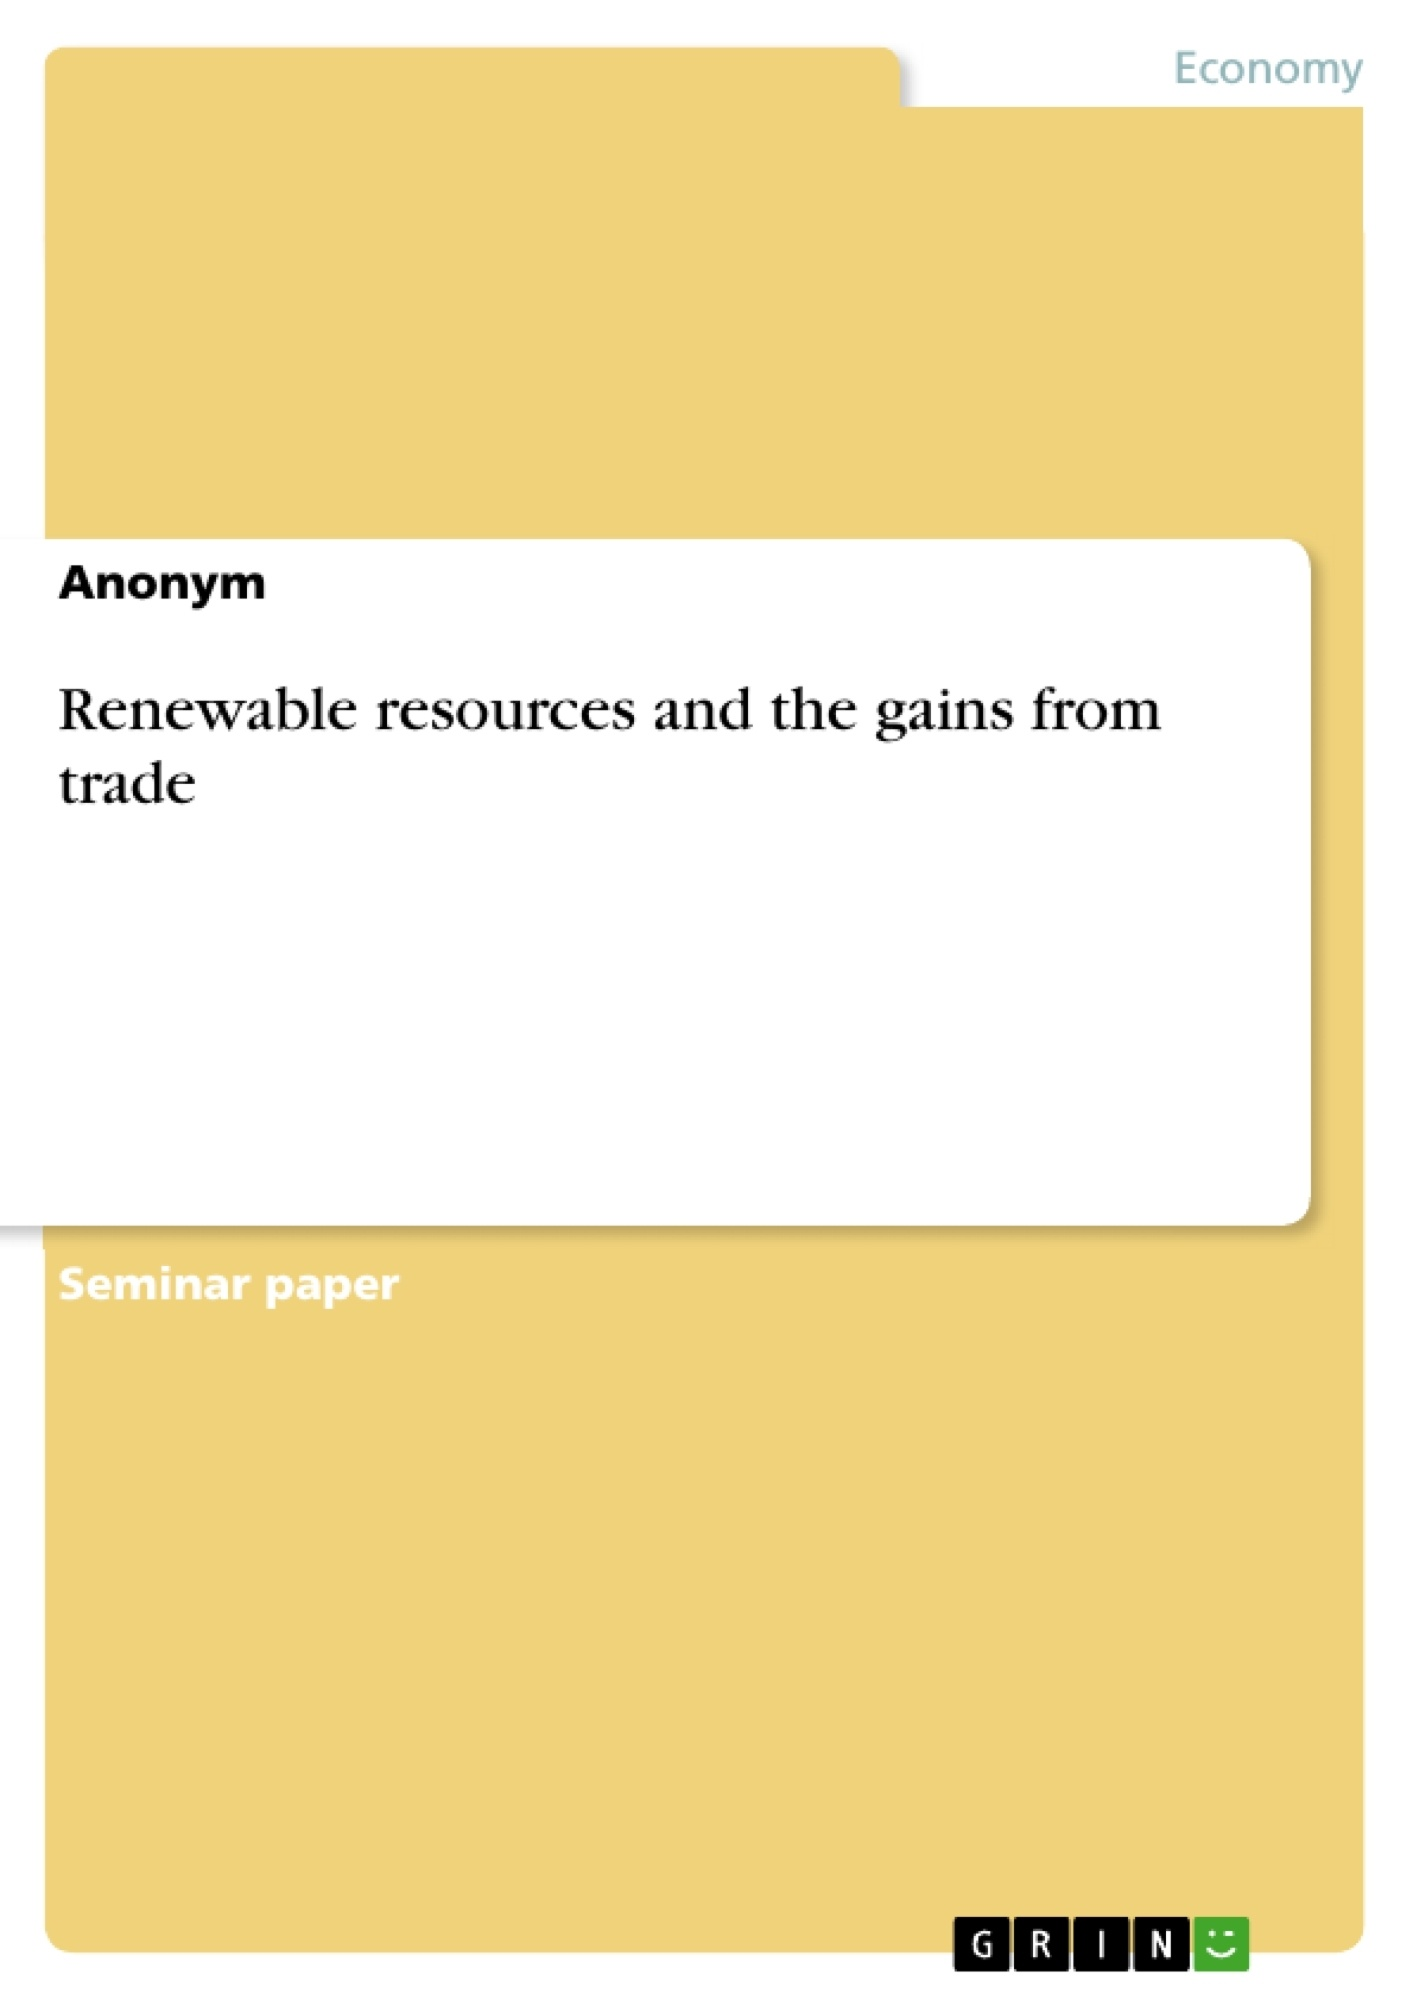 Title: Renewable resources and the gains from trade